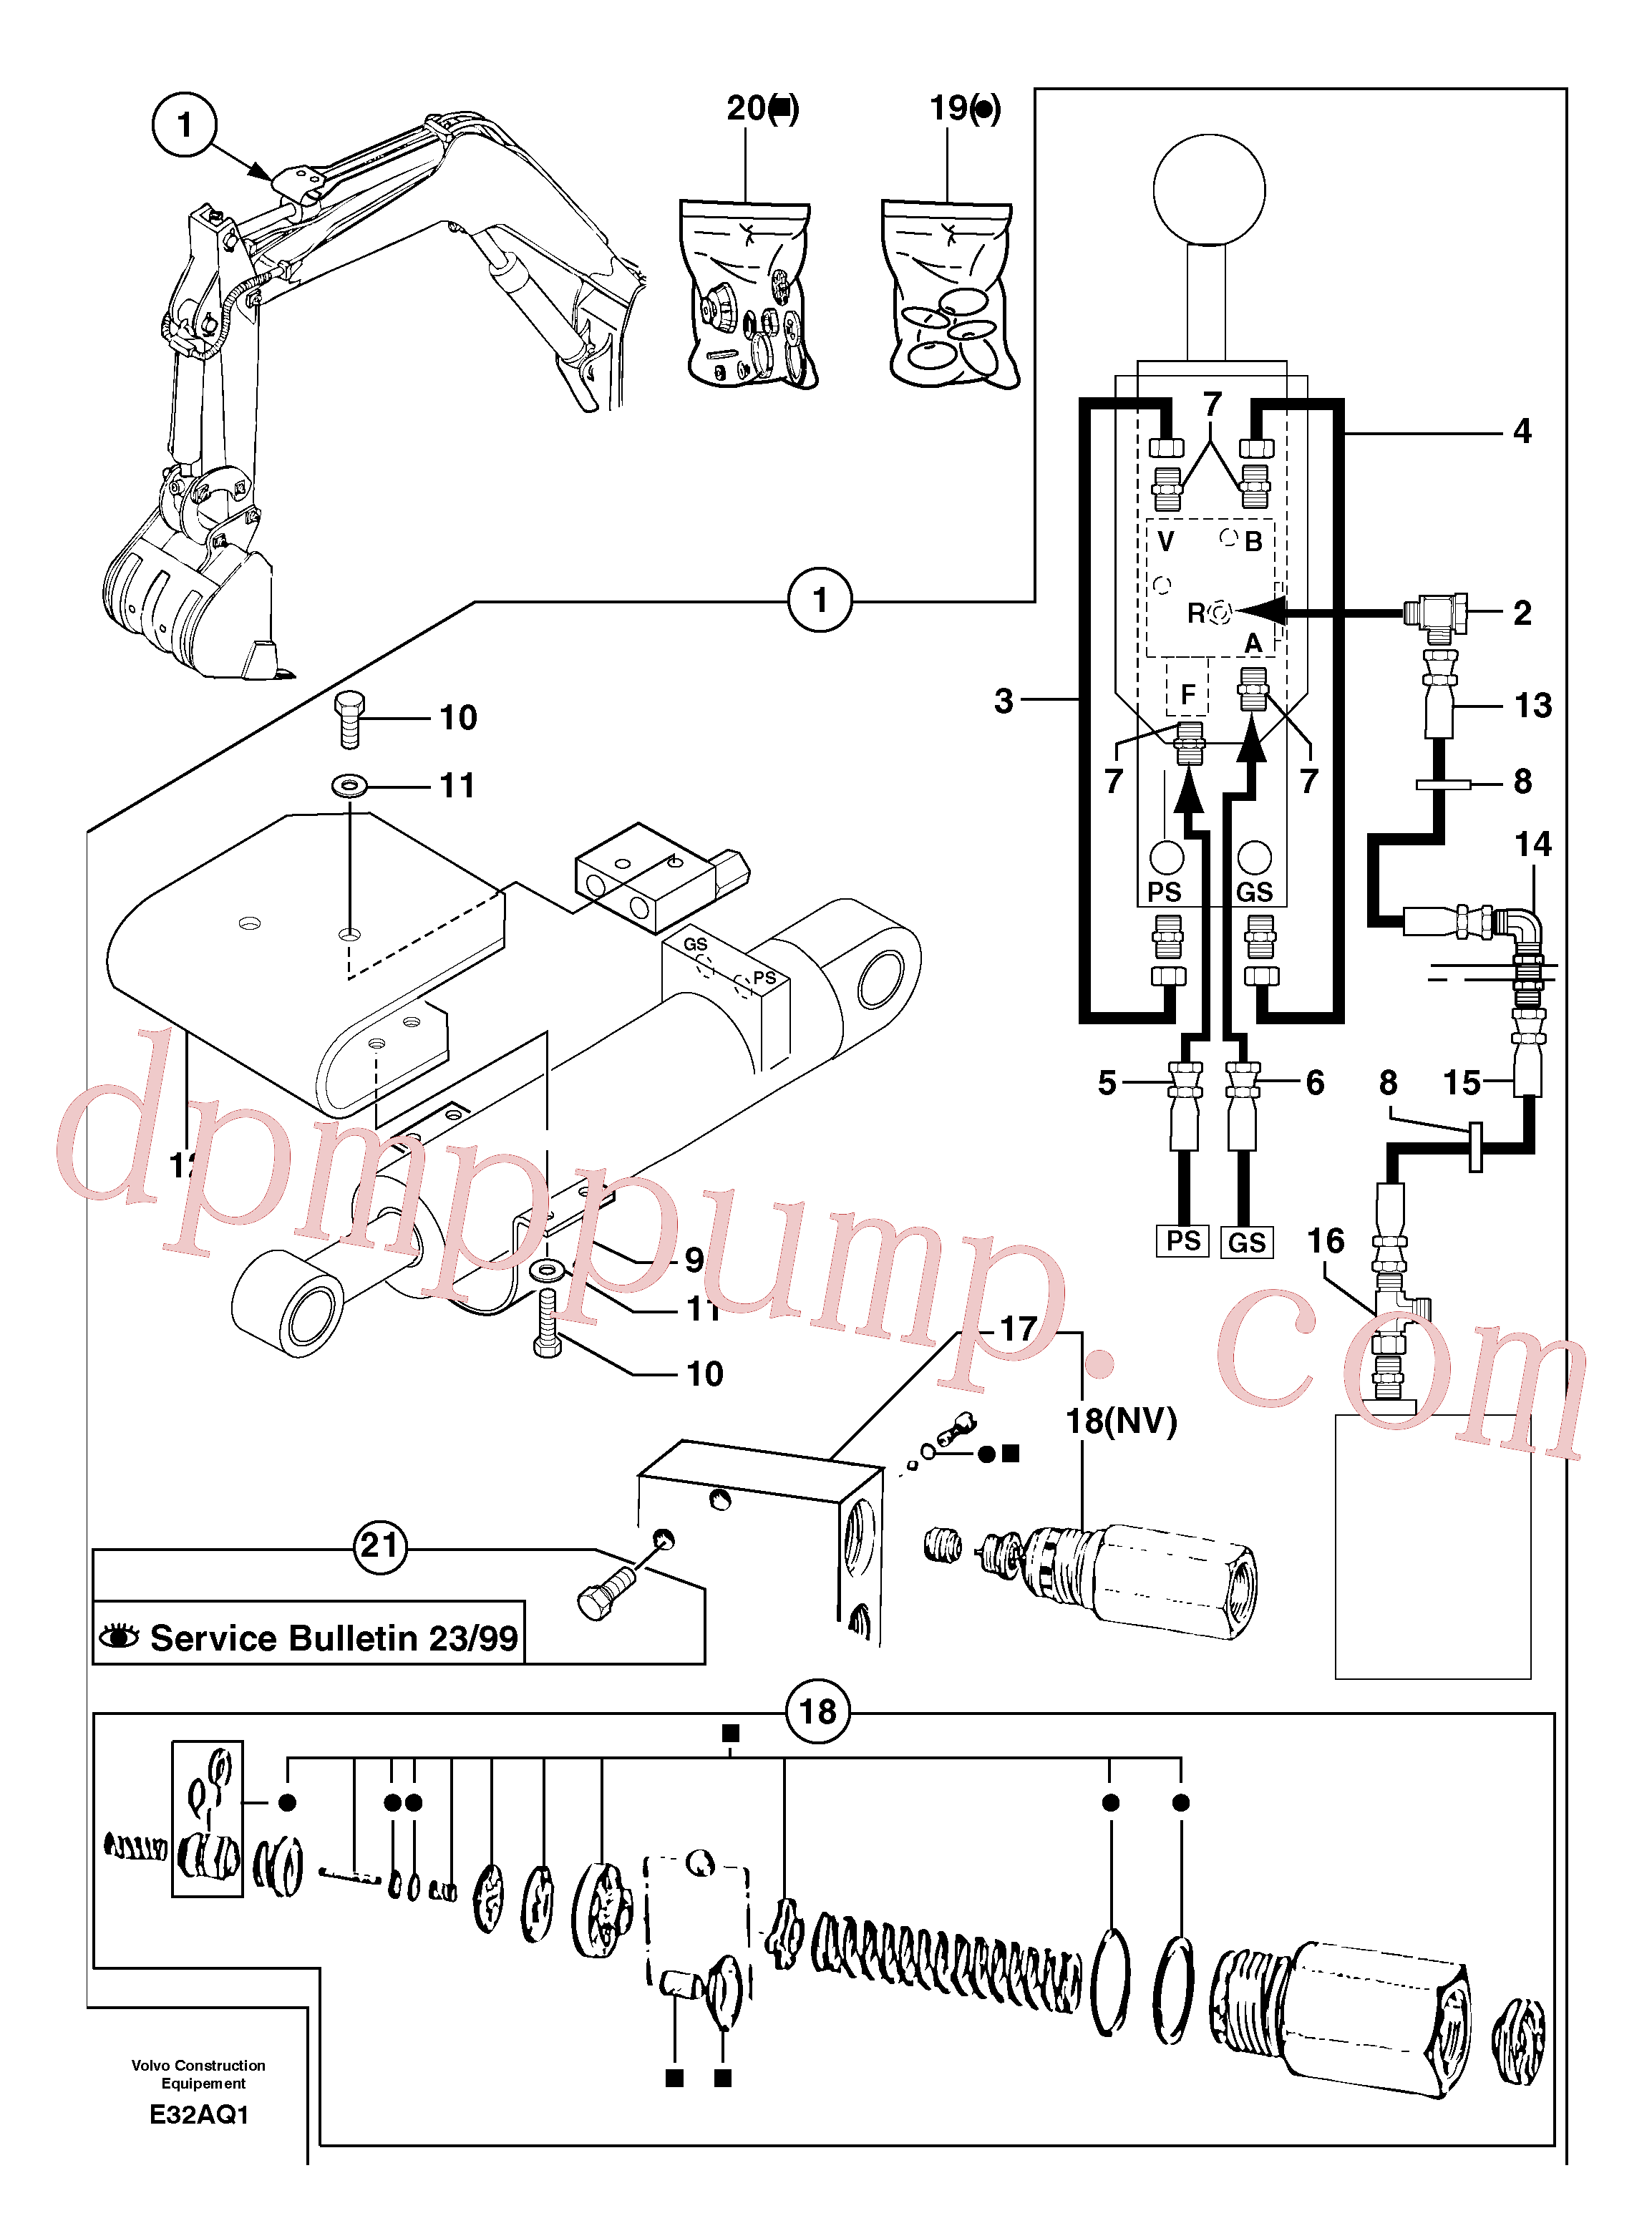 PJ5910720 for Volvo Safety valve ( dipper arm cylinder )(E32AQ1 assembly)